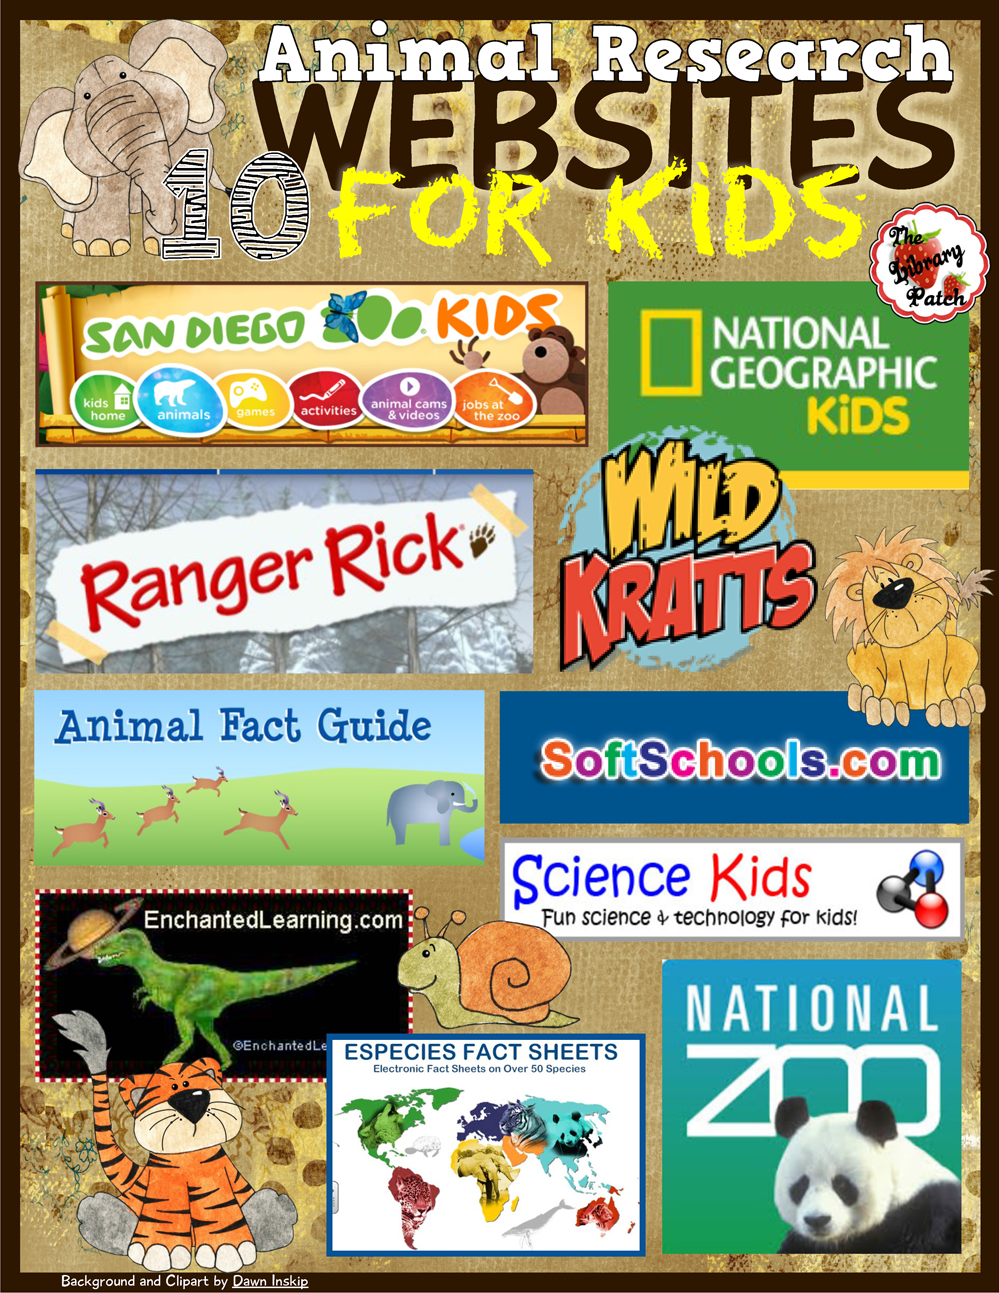 http://www.teacherspayteachers.com/FreeDownload/Animal-Research-Websites-for-Kids-1641256